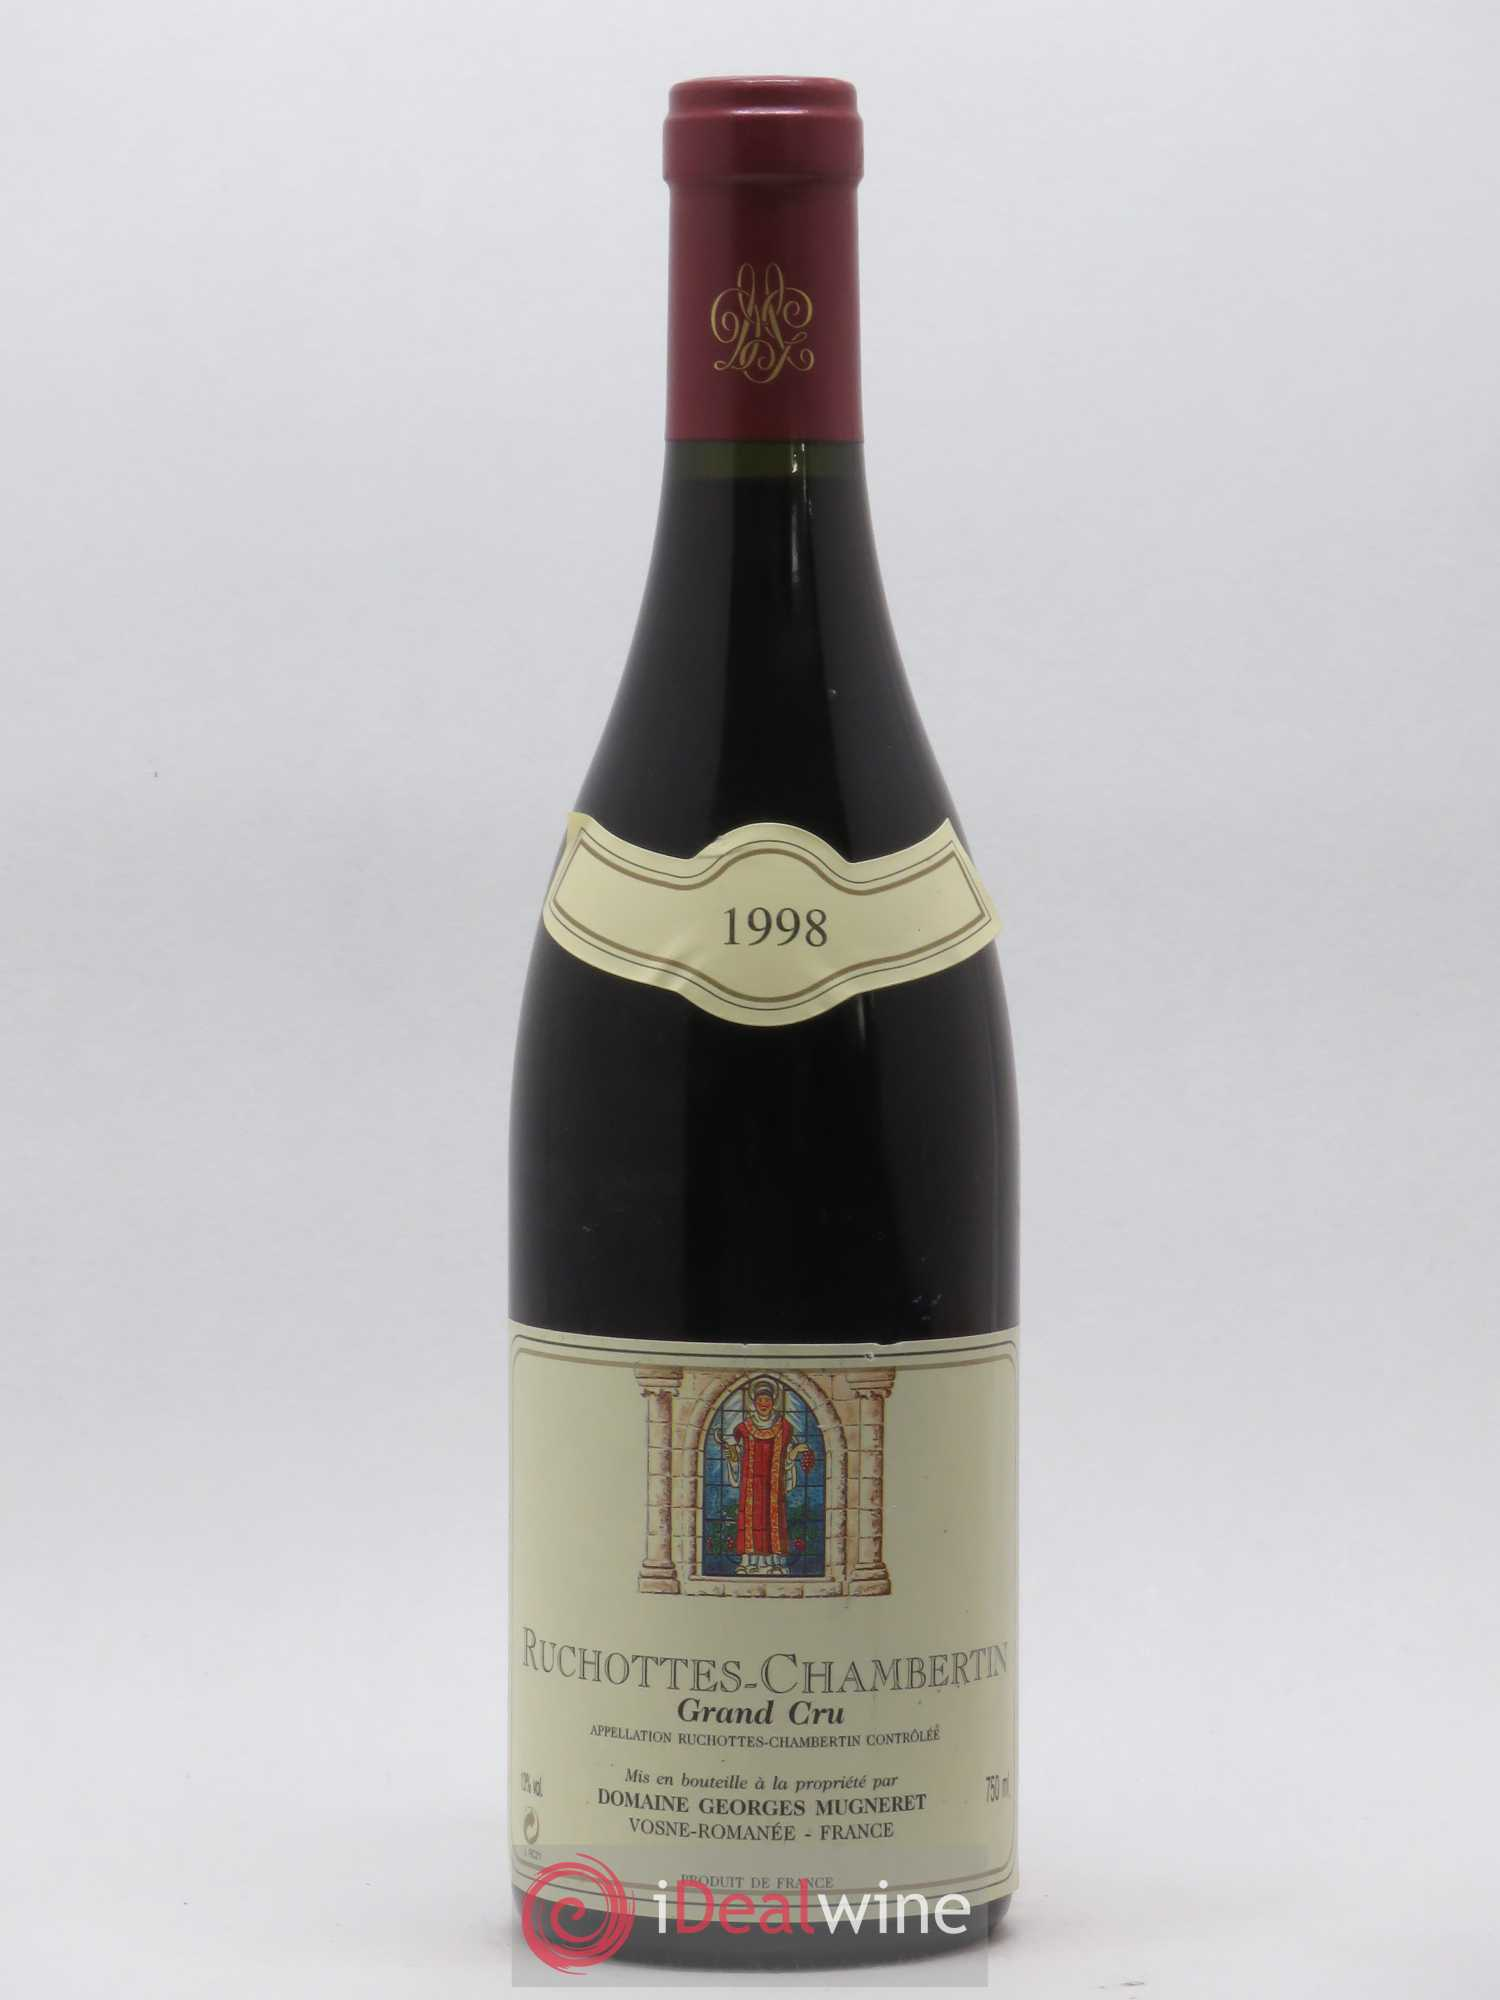 Ruchottes-Chambertin Grand Cru Georges Mugneret (Domaine)  1998 - Lot of 1 Bottle